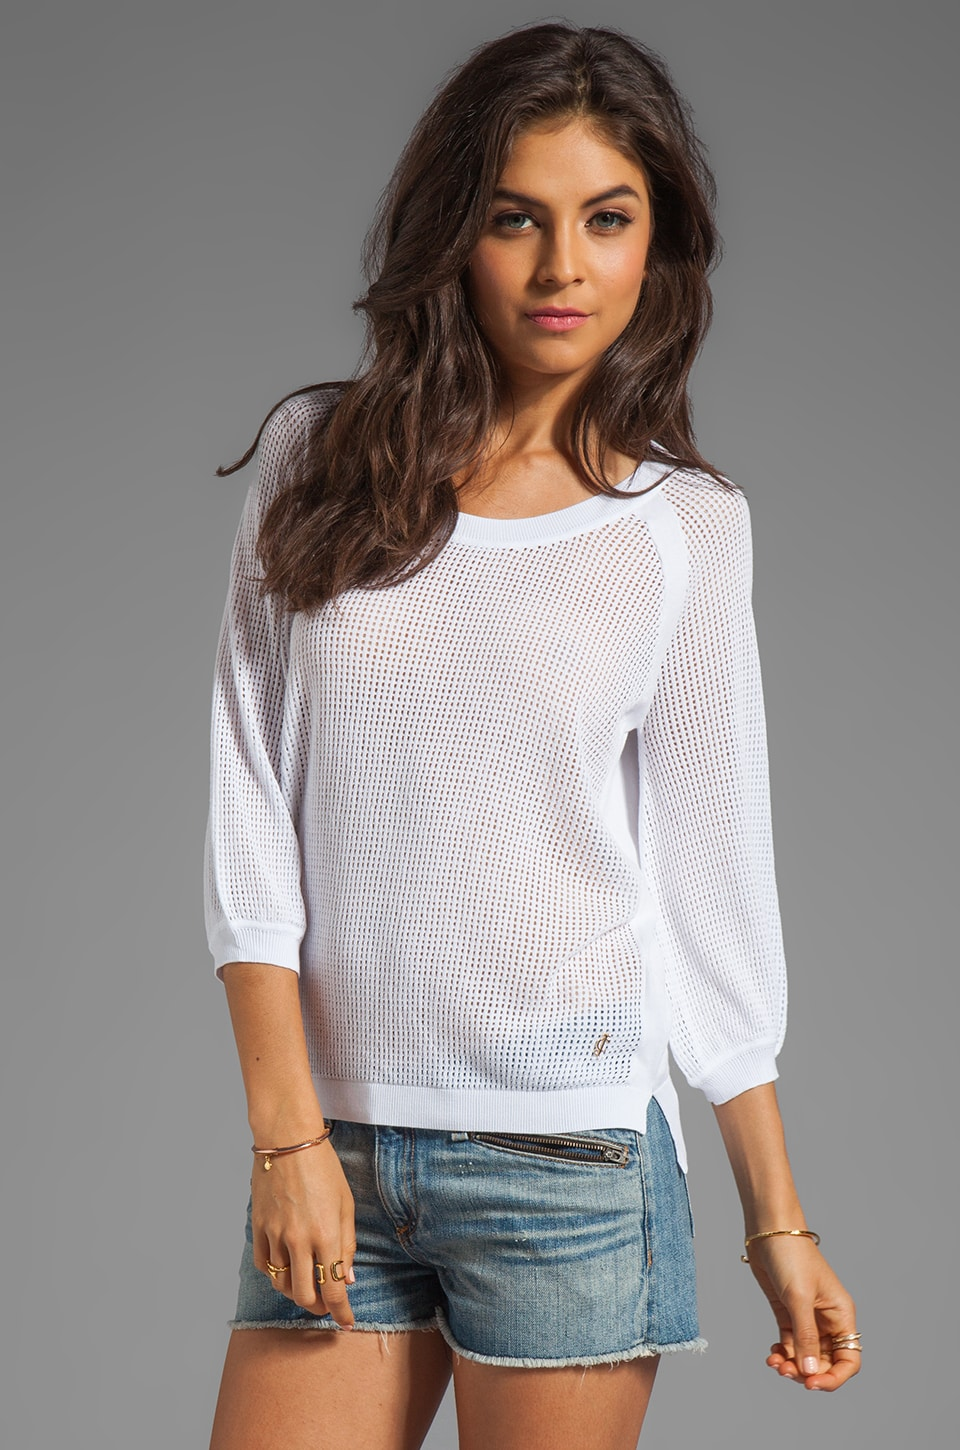 Juicy Couture Catalina Pullover Sweater in White